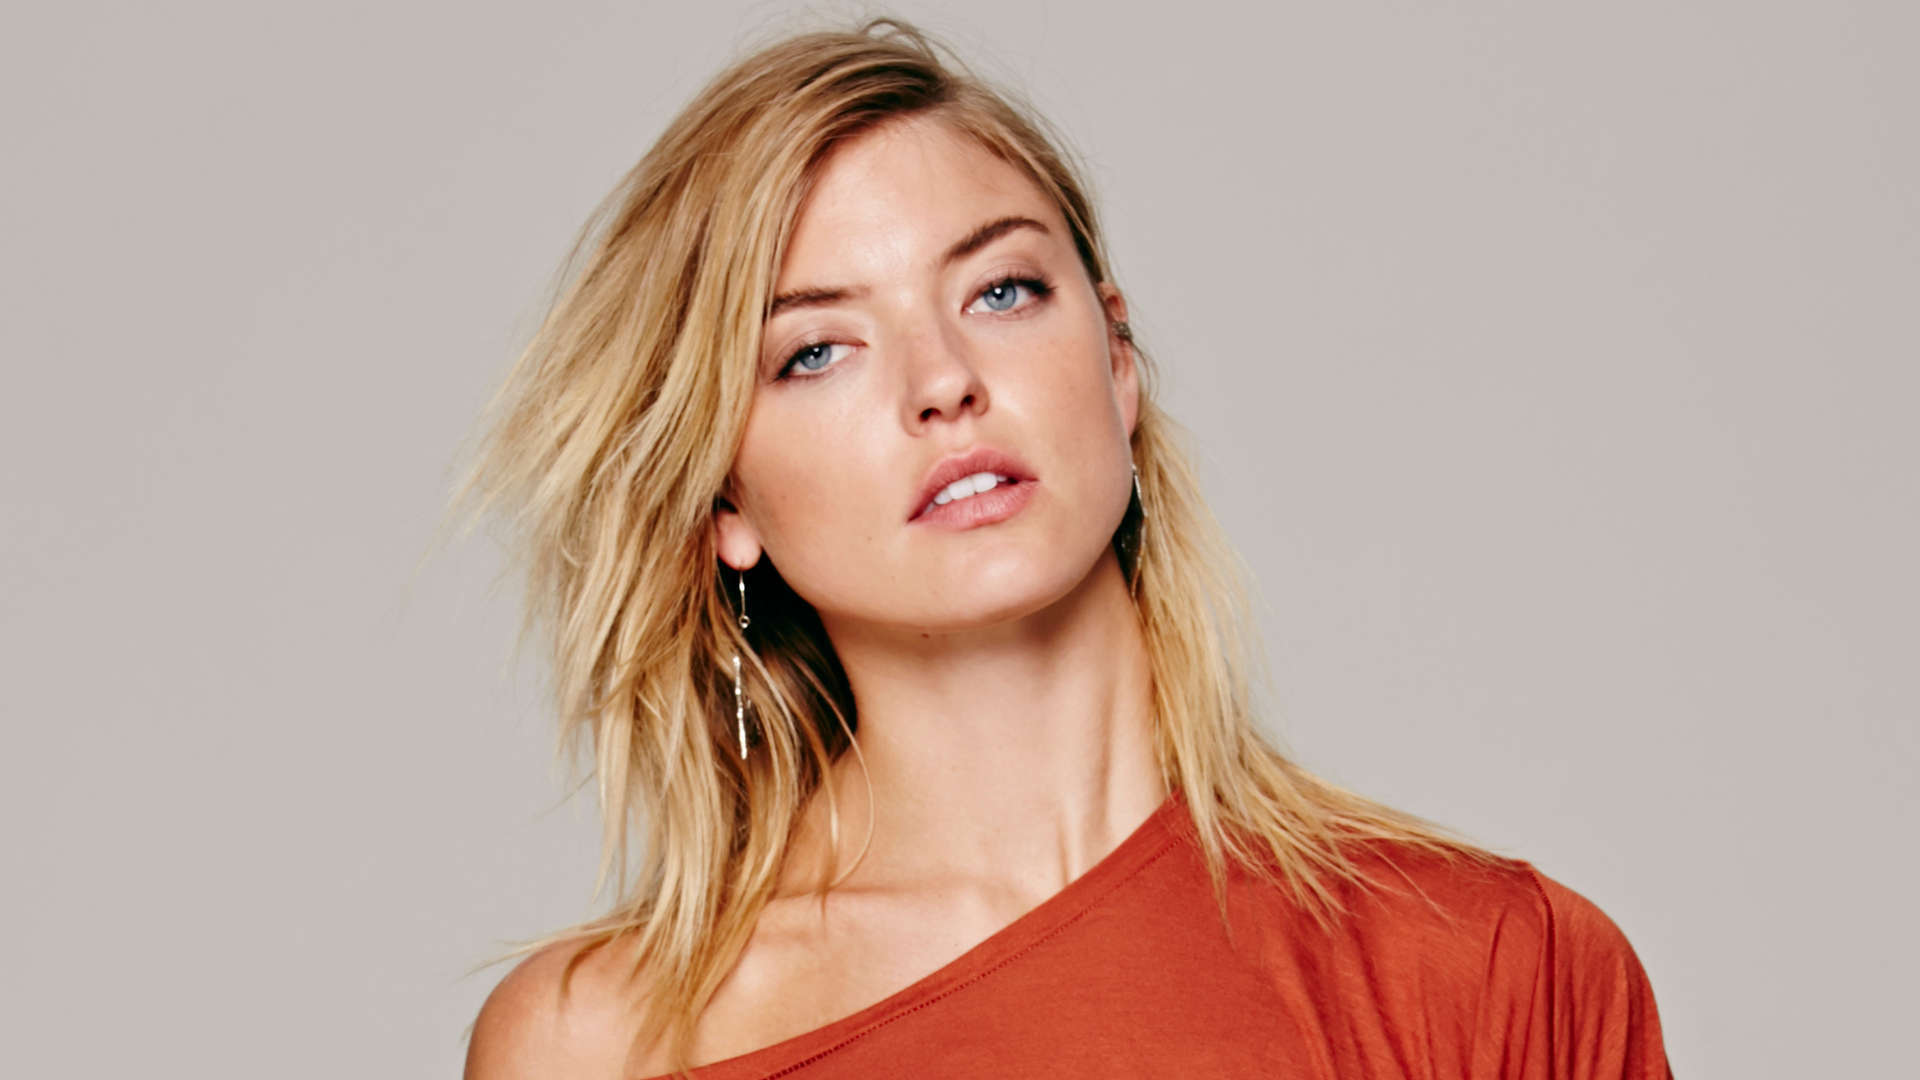 Martha Hunt Wallpapers Images Photos Pictures Backgrounds